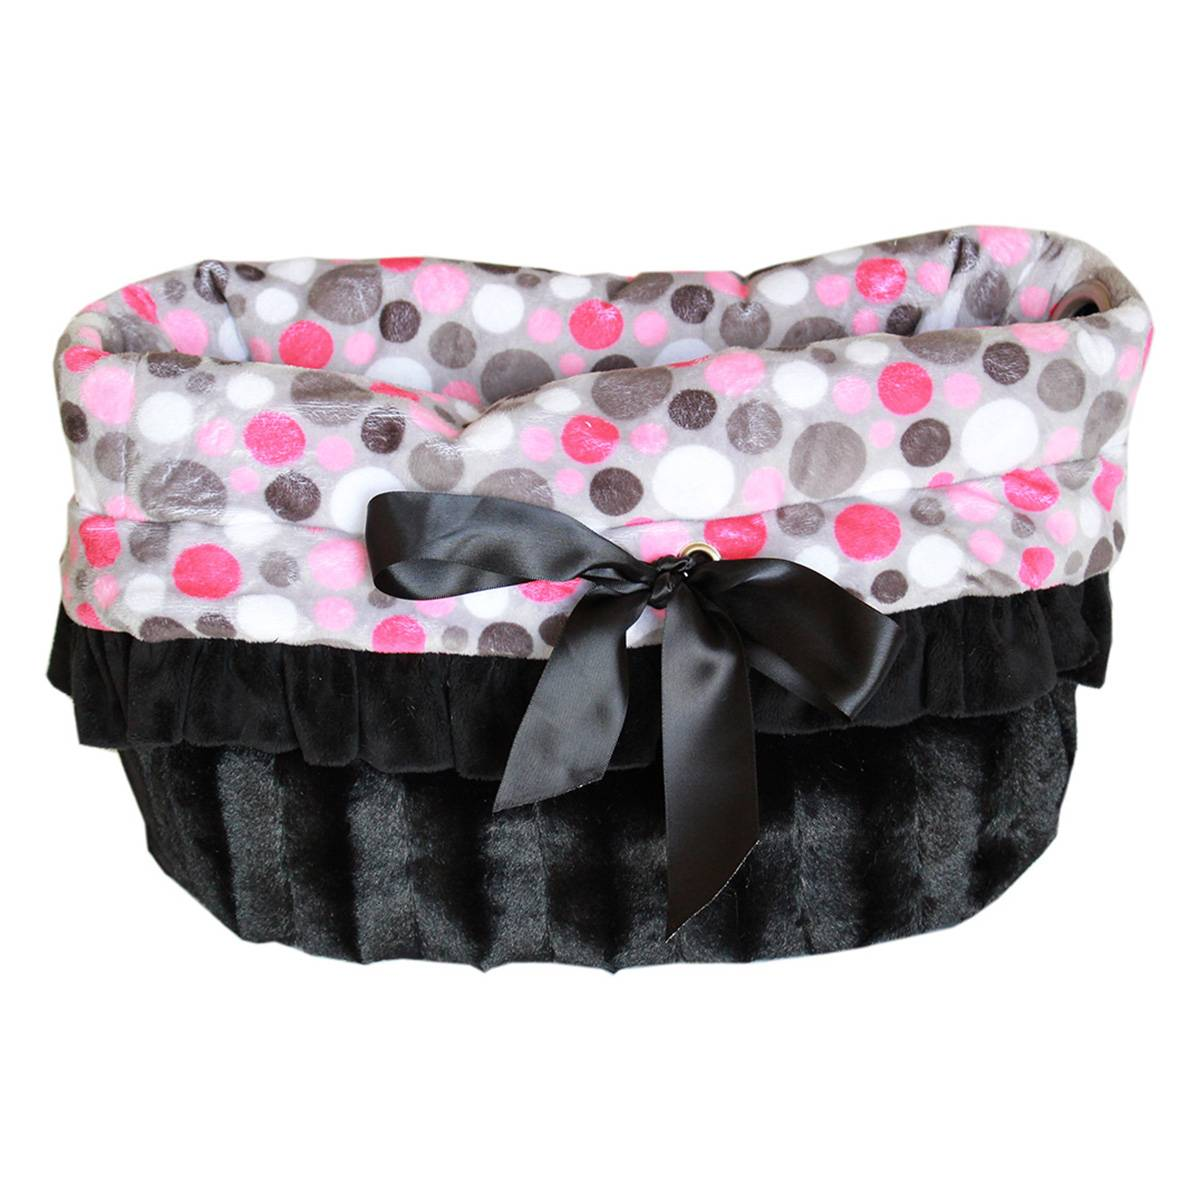 Mirage 500-113 Reversible Snuggle Bugs Pet Bed, Bag & Car Seat, Pink Party Dots - One Size